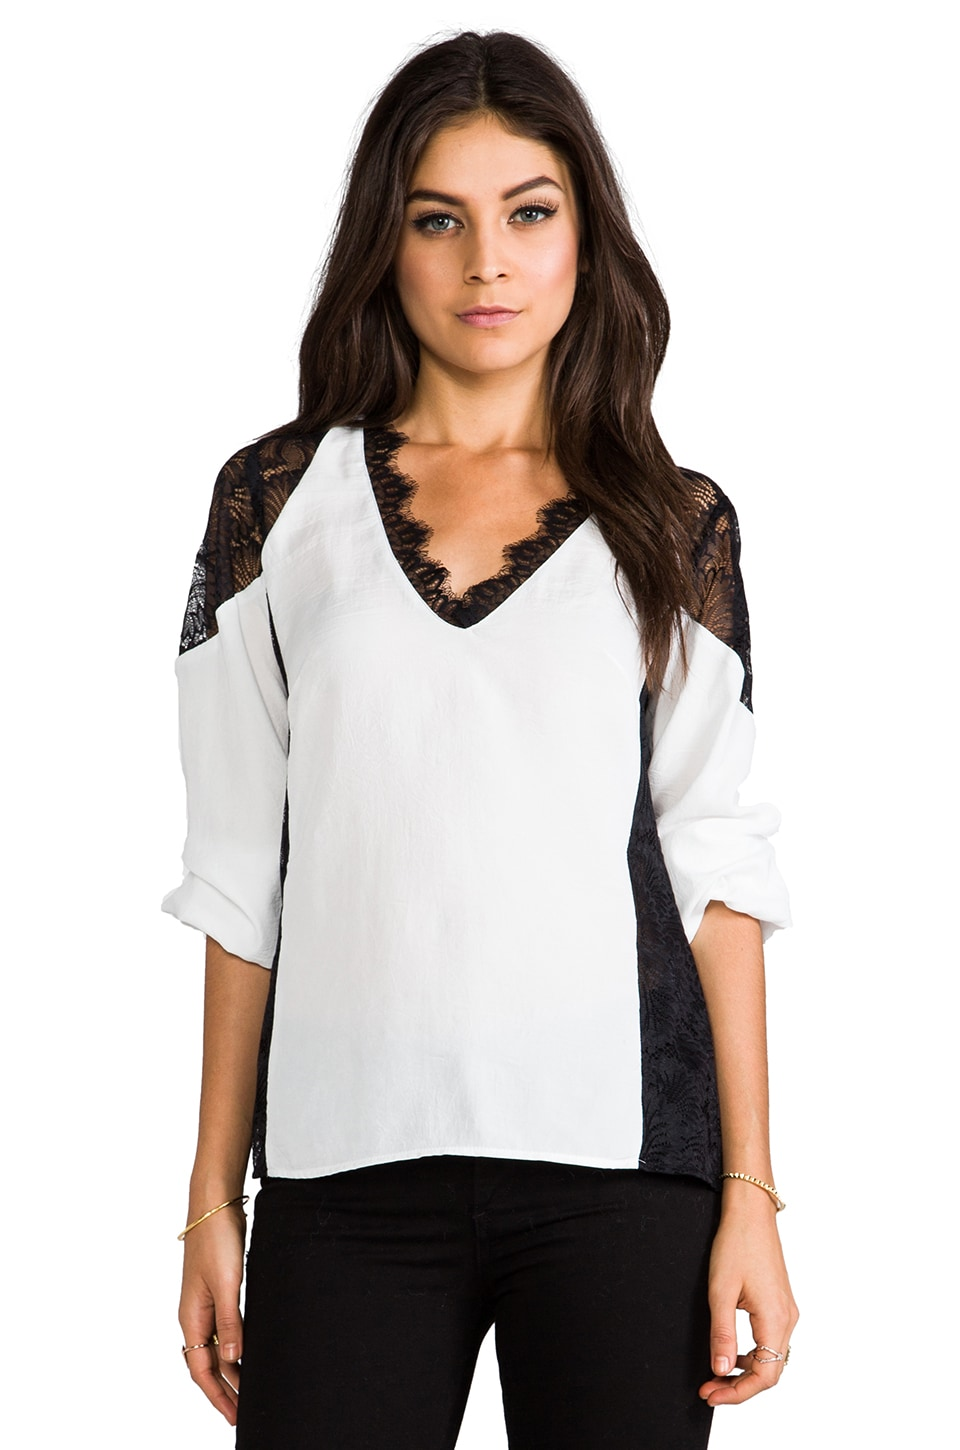 Nanette Lepore Sweet Memories Top in White/Black